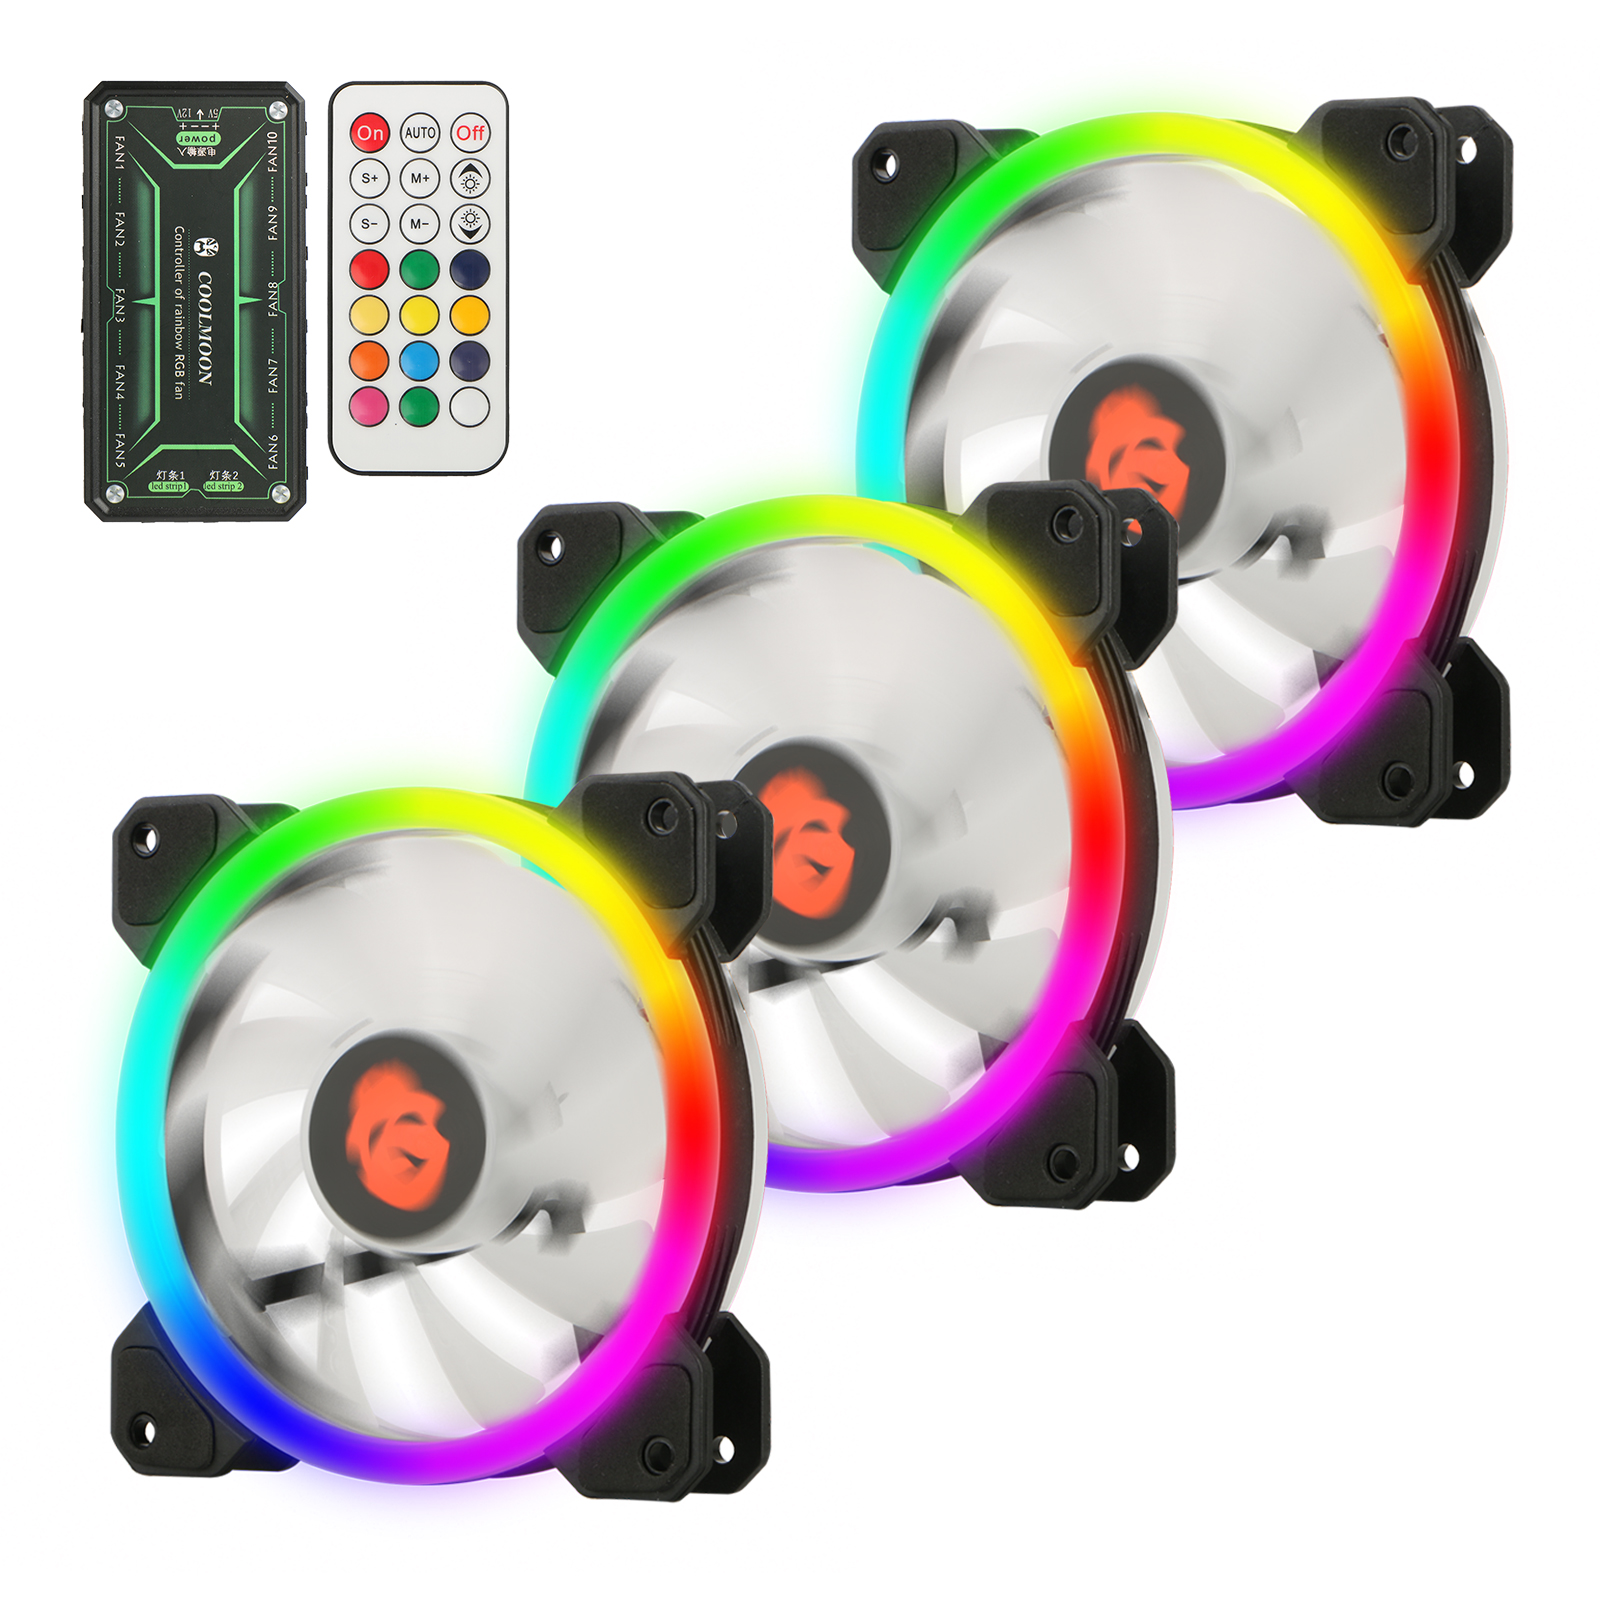 RGB PC Fans, EEEKit Unique 3-IN-1 Kit 12V 120mm RGB LED Computer Case Cooling Fan CPU Cooling Fan Arc-Shaped Frame with Remote Controller, 3-Pack